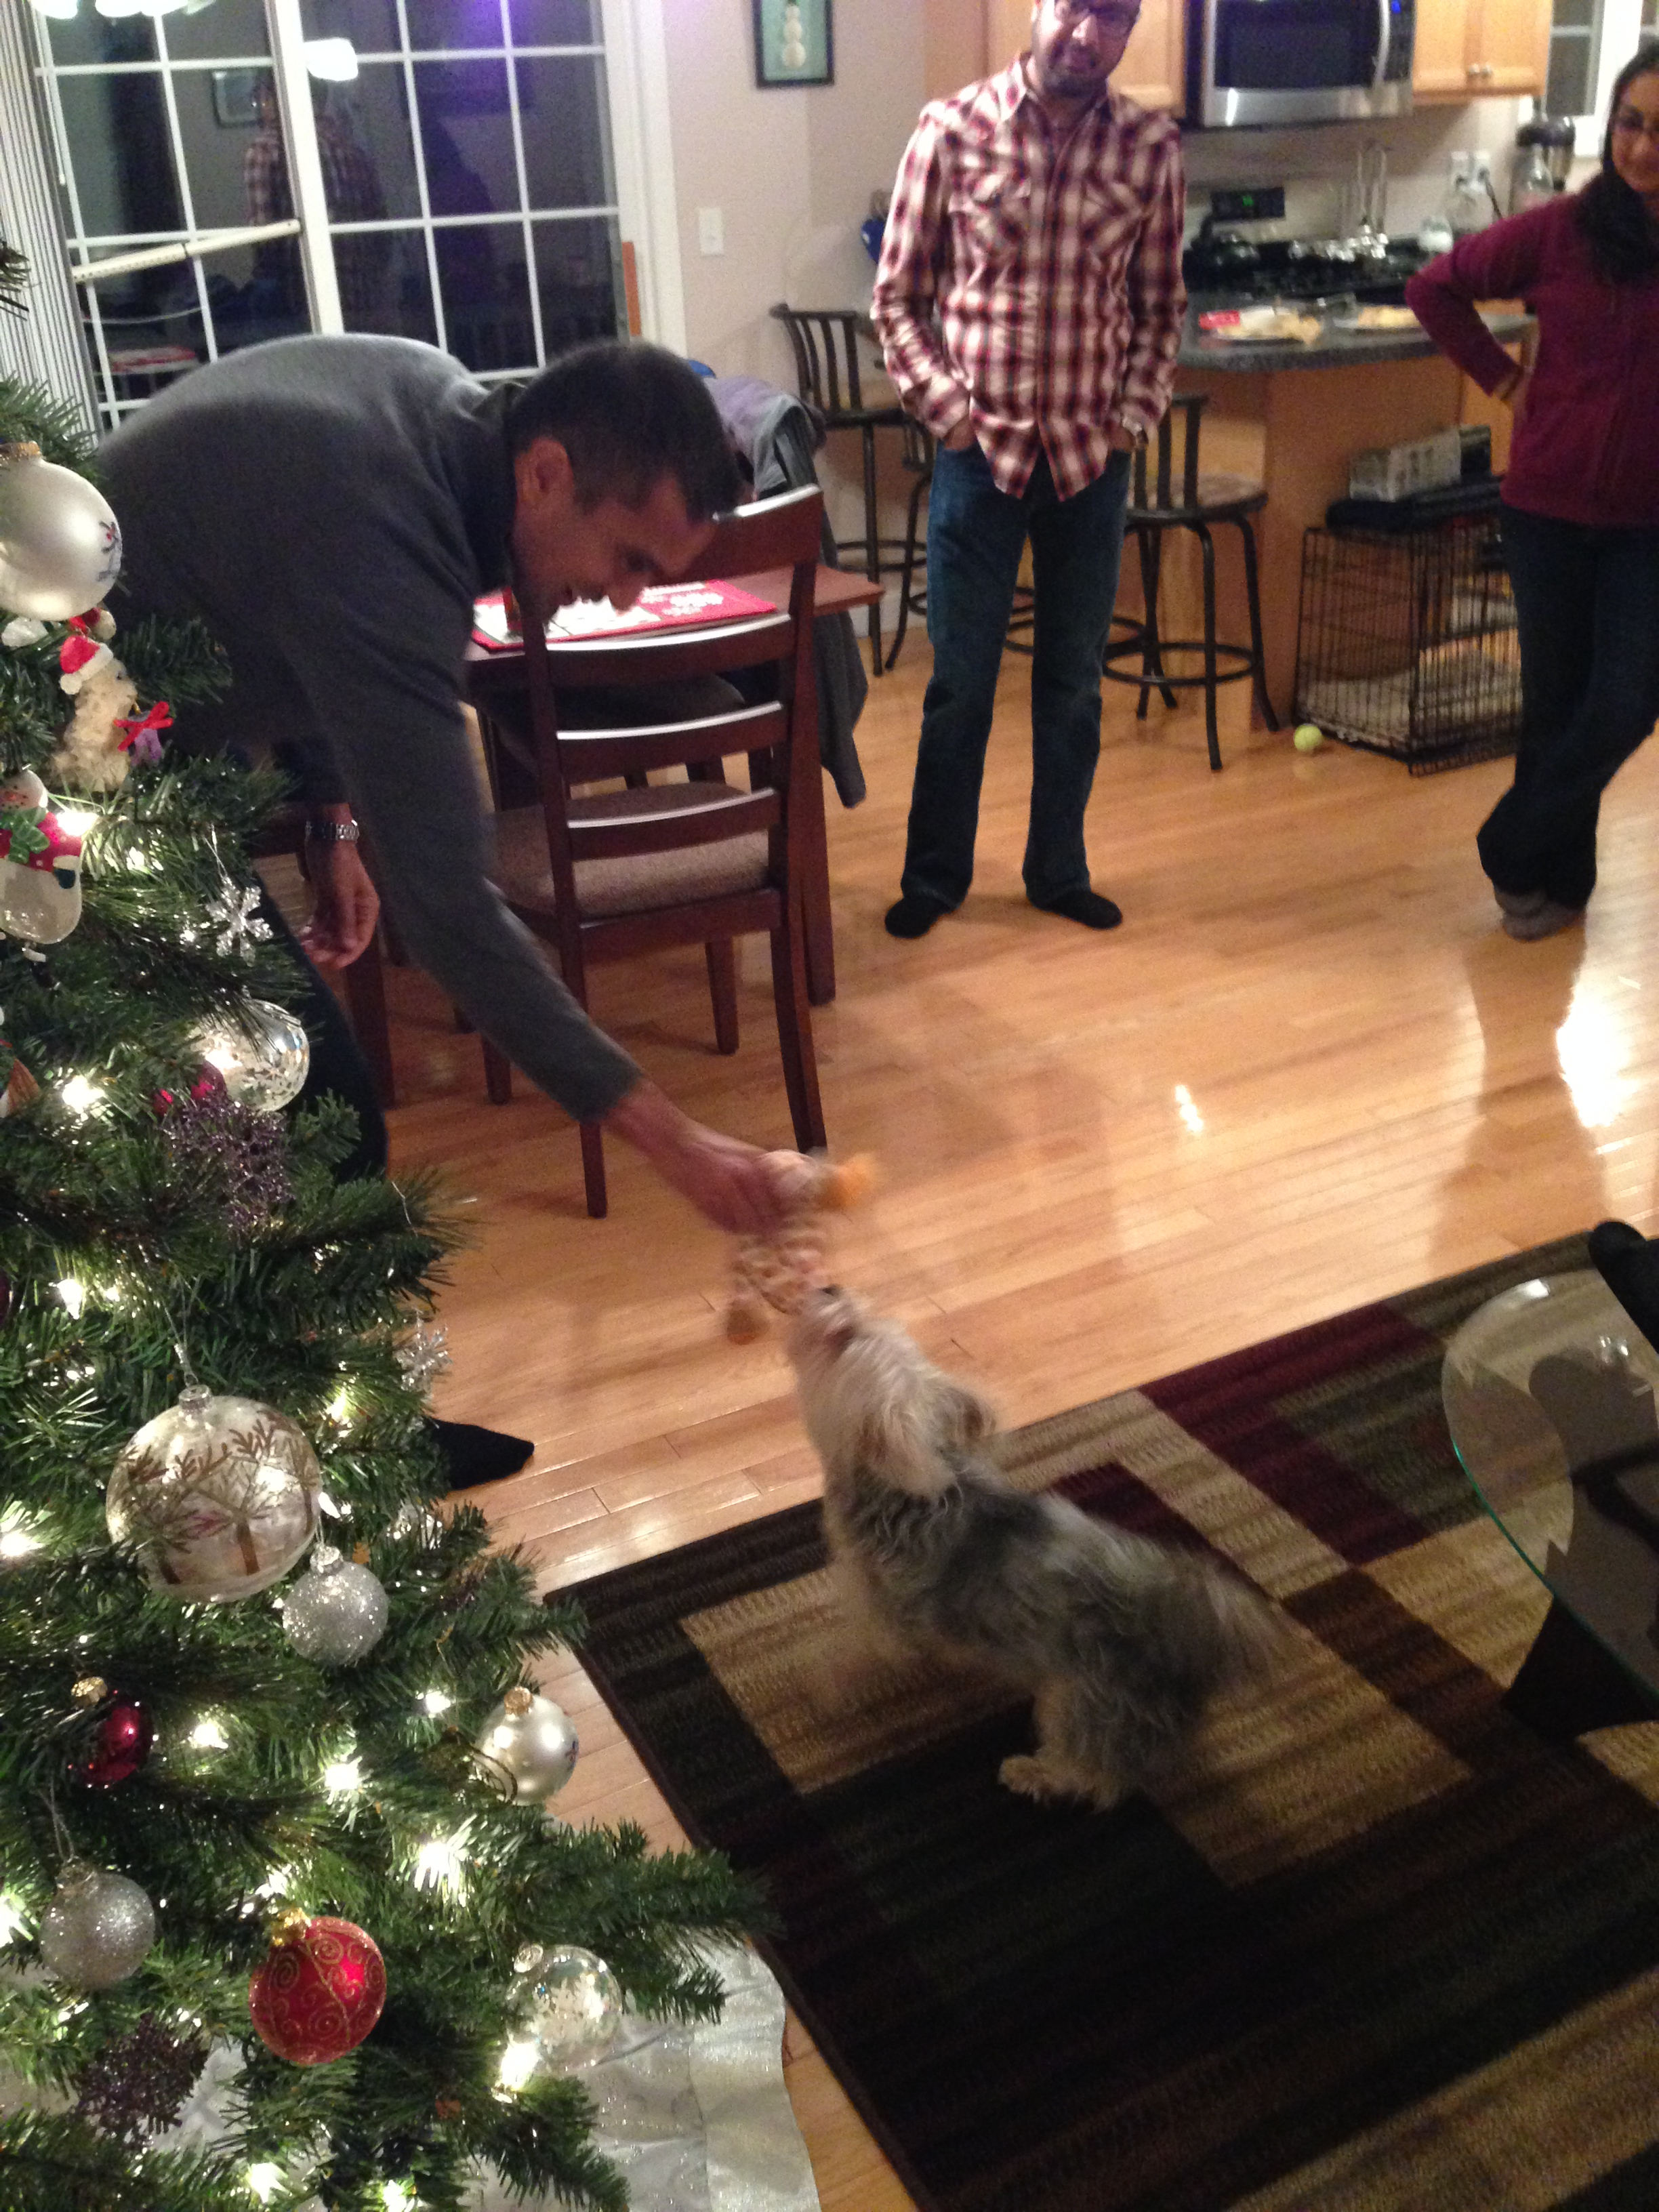 Xmas with dogs: This image from our New England visits to warm homes and warmer hosts.